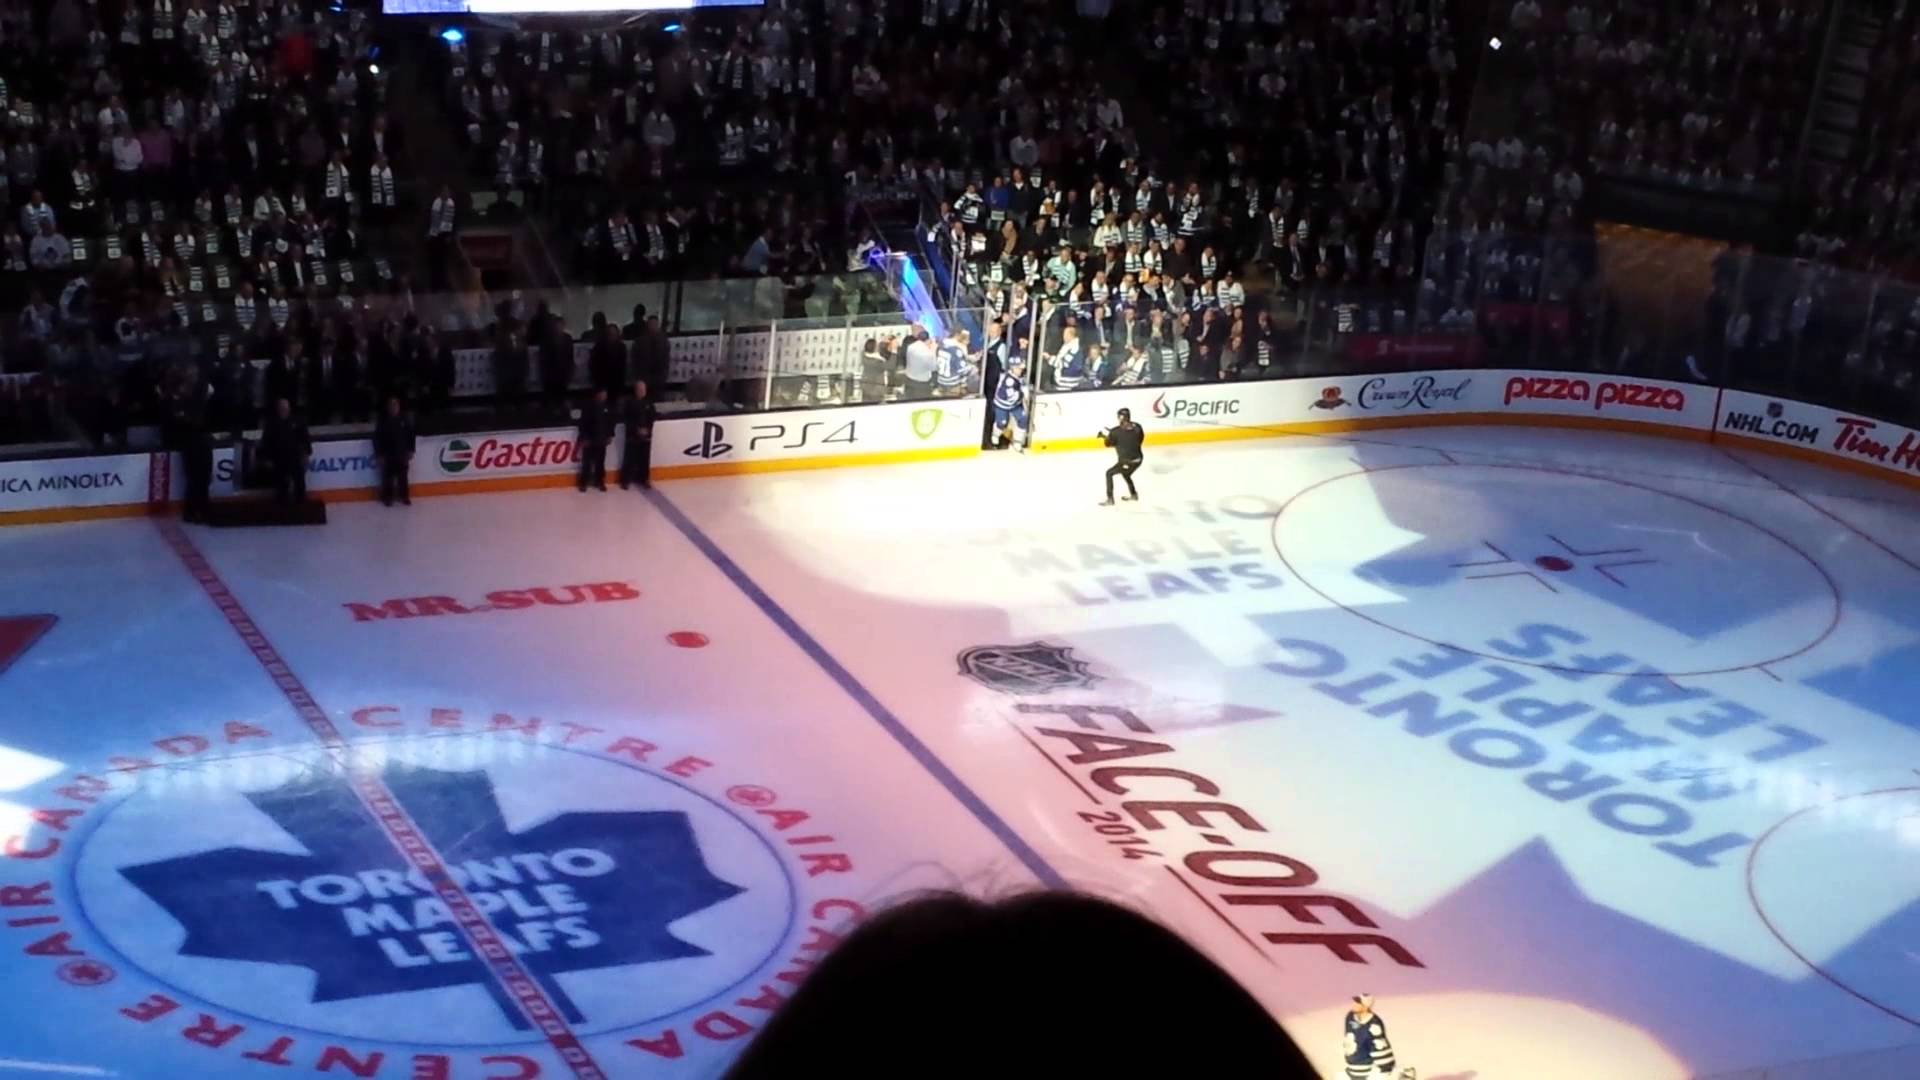 Toronto Maple Leafs opening ceremonies 2014